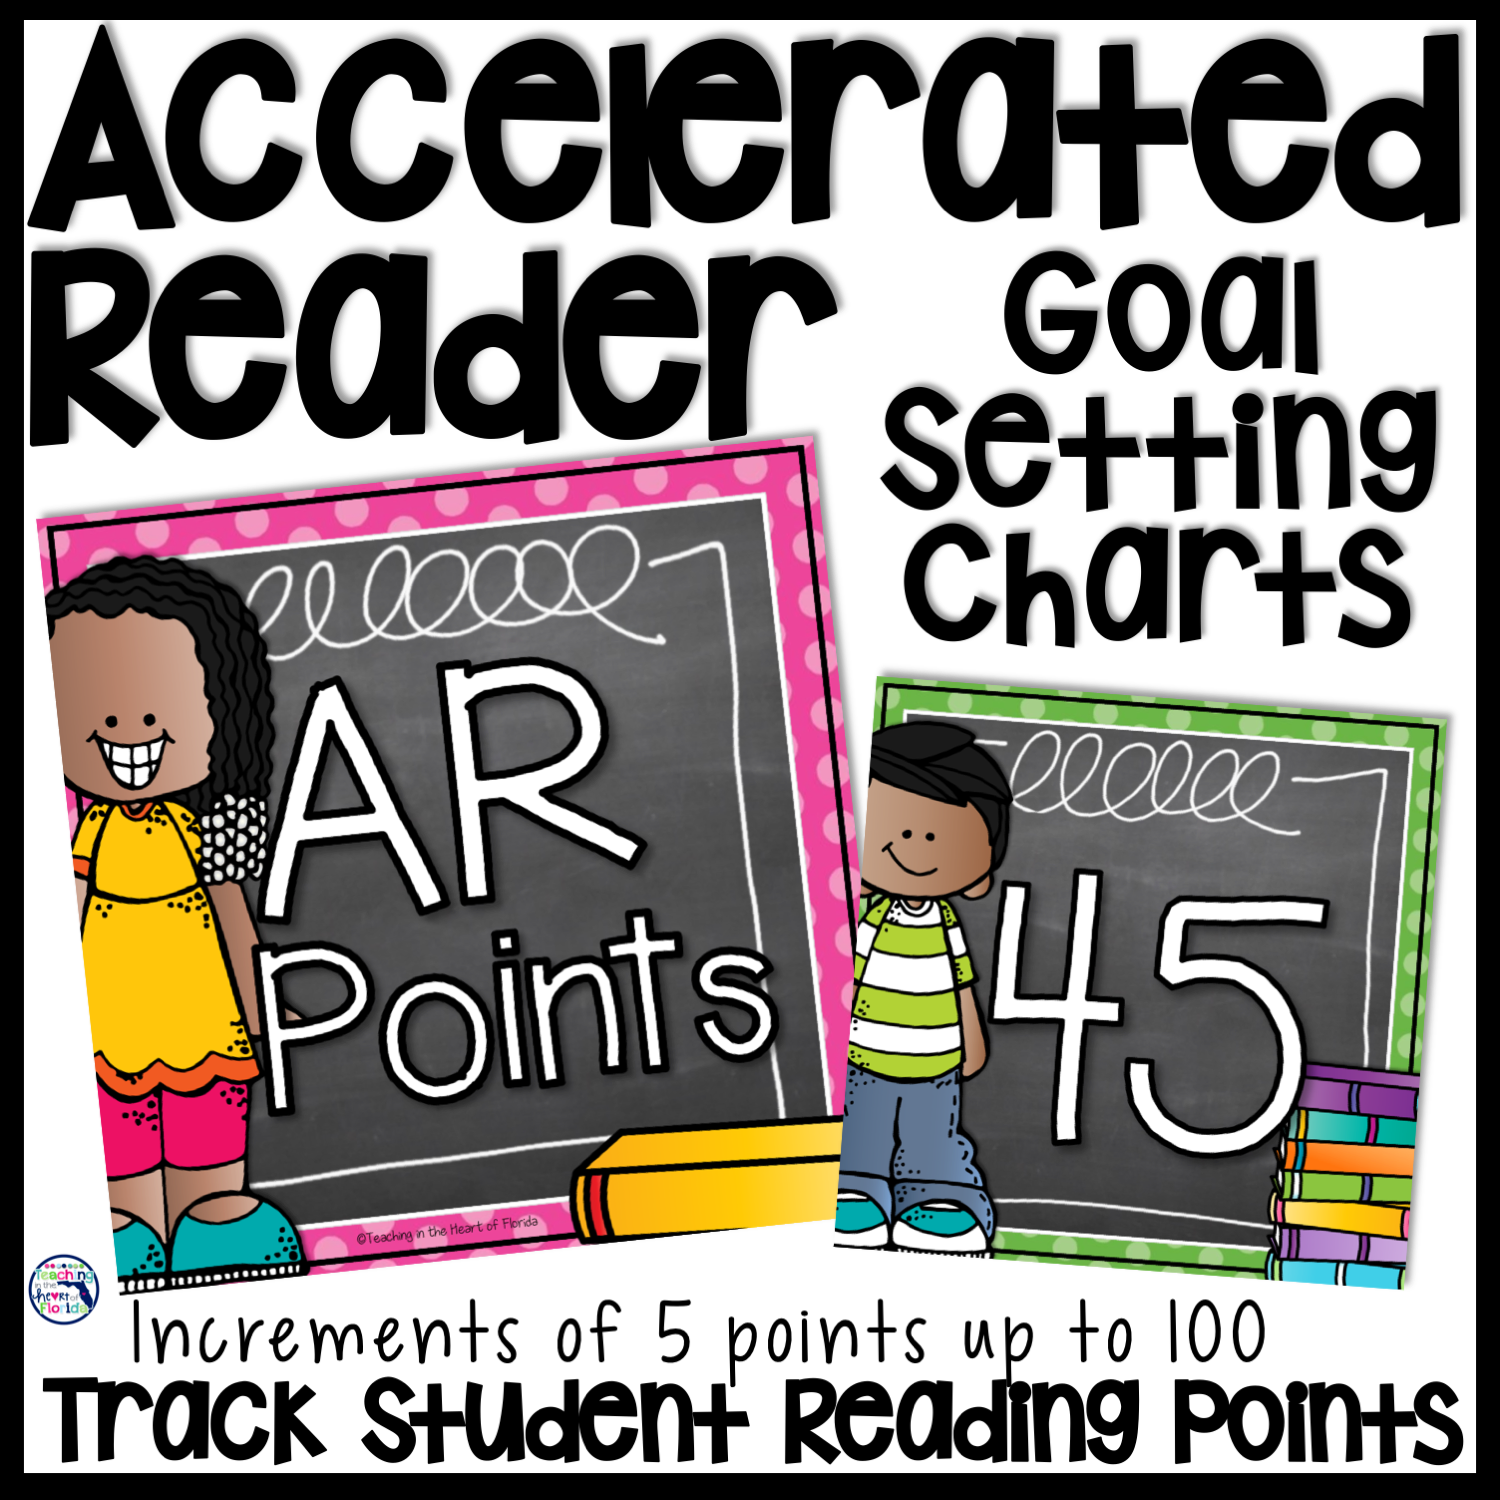 Using Accelerated Reader Goal Setting Charts to Motivate ...